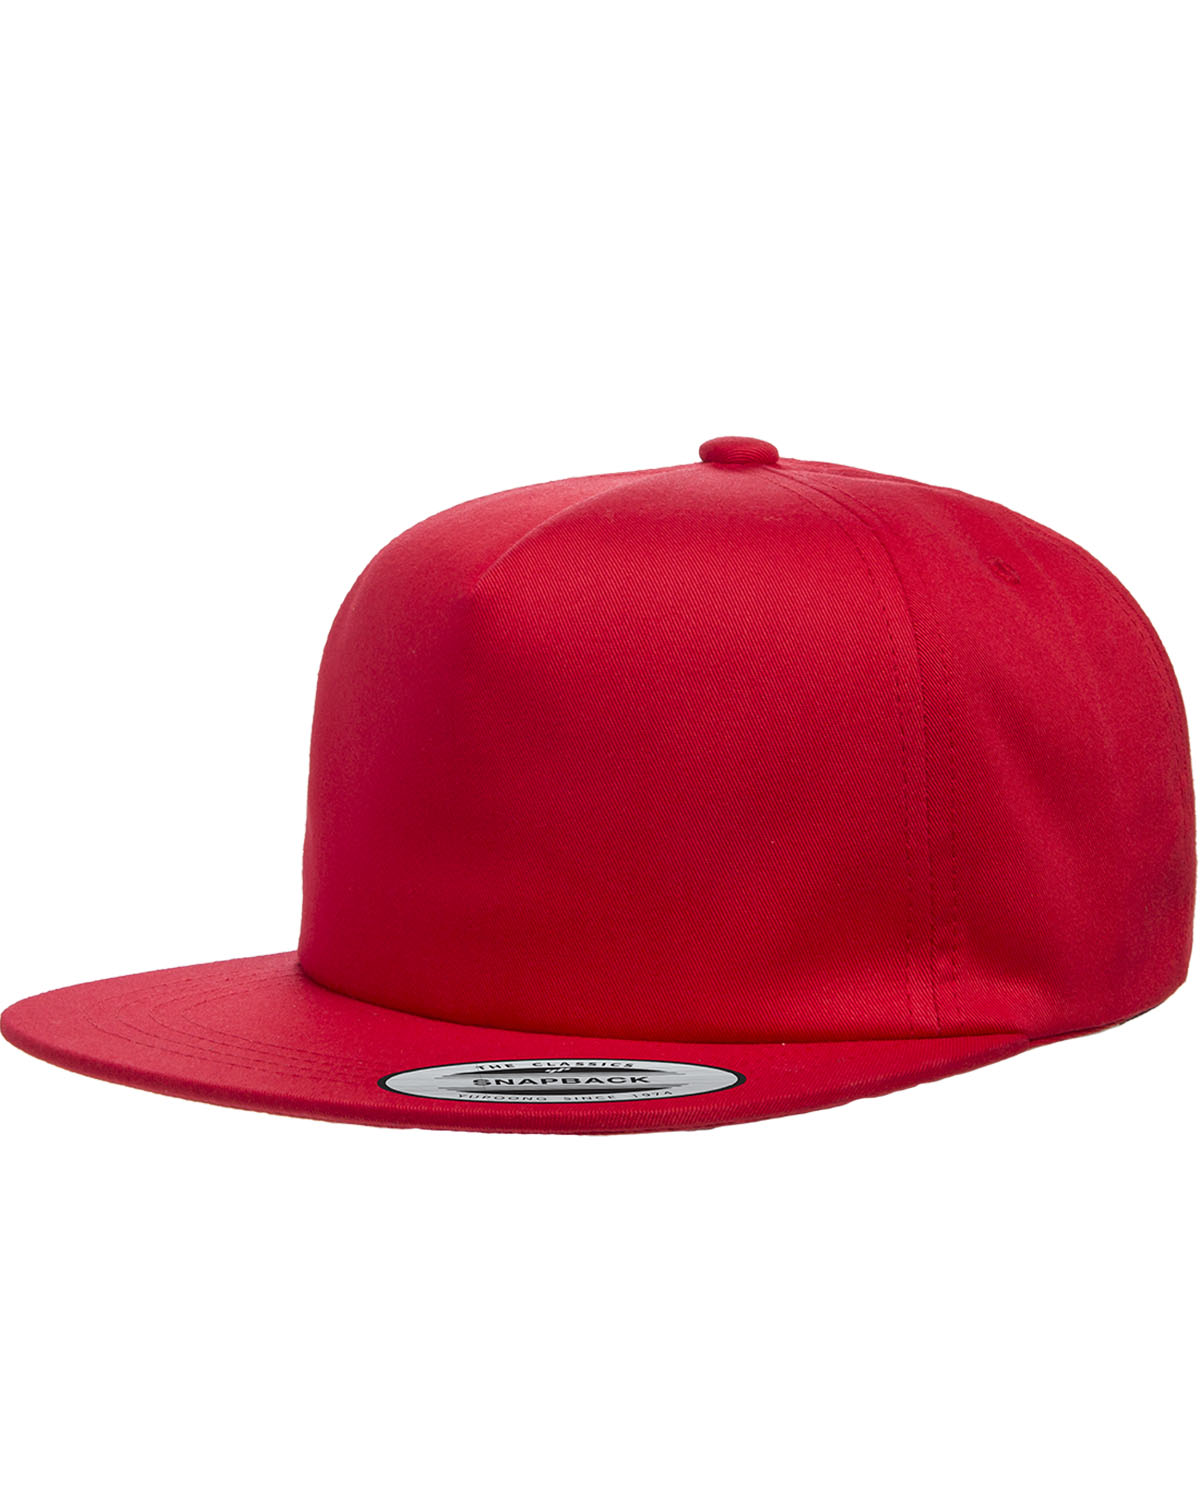 Yupoong Y6502 Adult Unstructured 5 Panel Snapback Cap